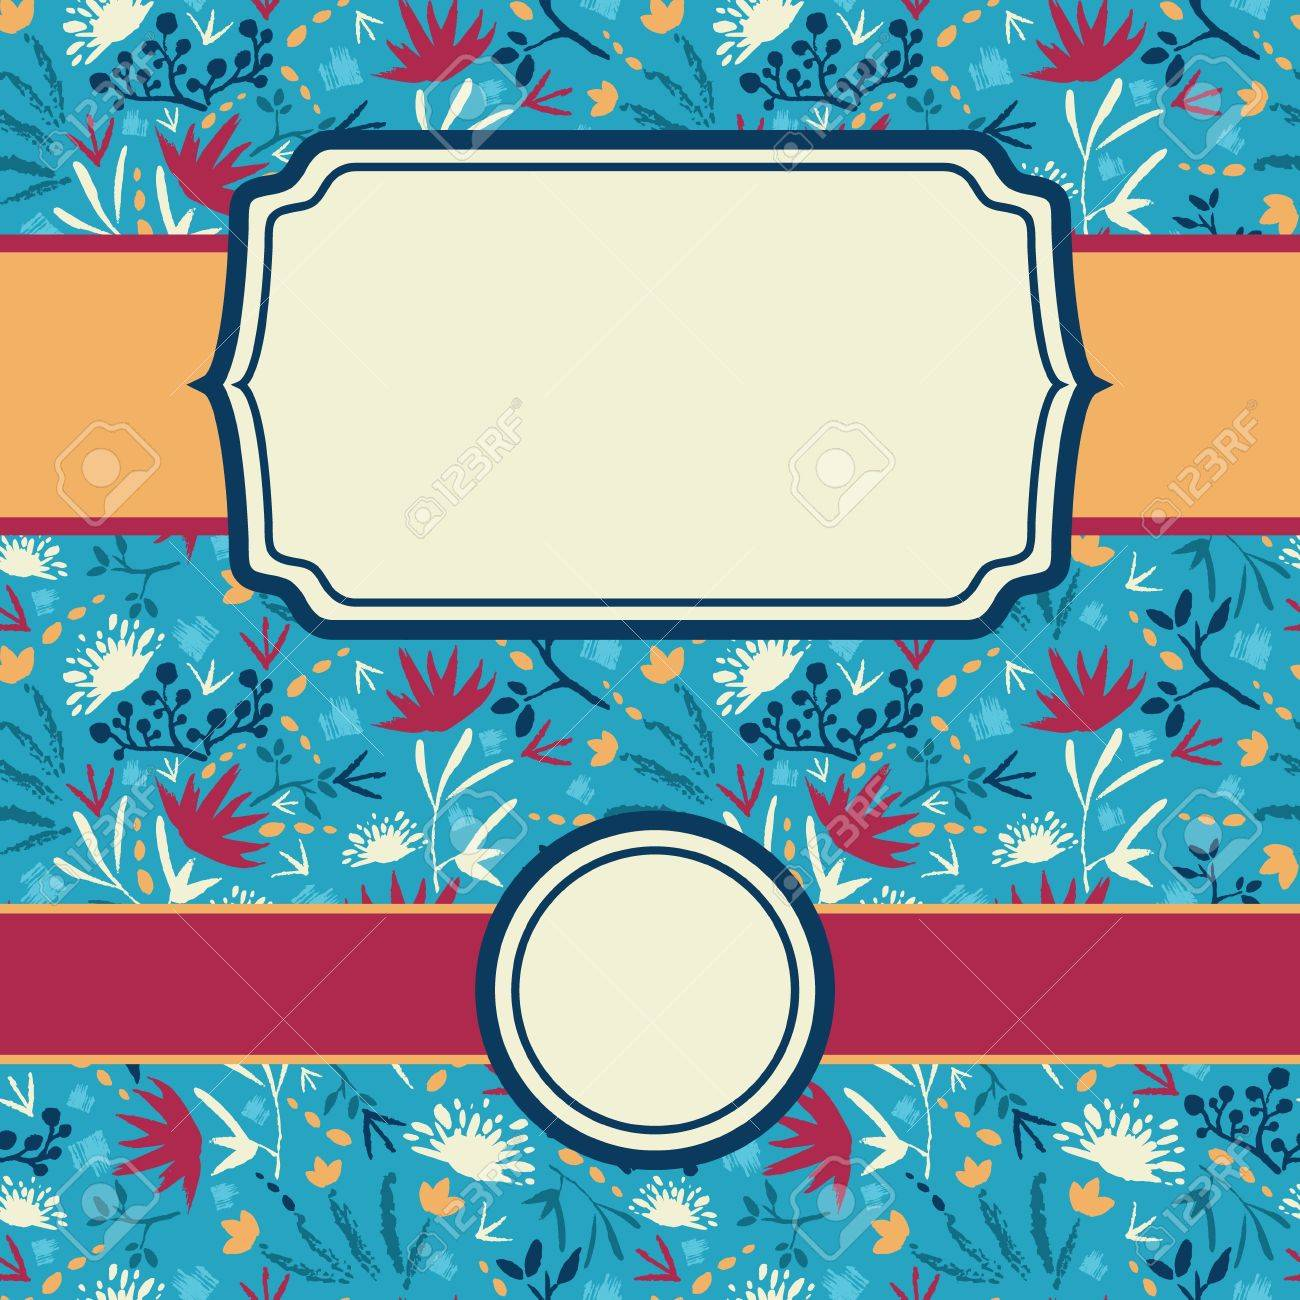 set of frames with abstract painted flowers seamless pattern background Stock Vector - 17379754